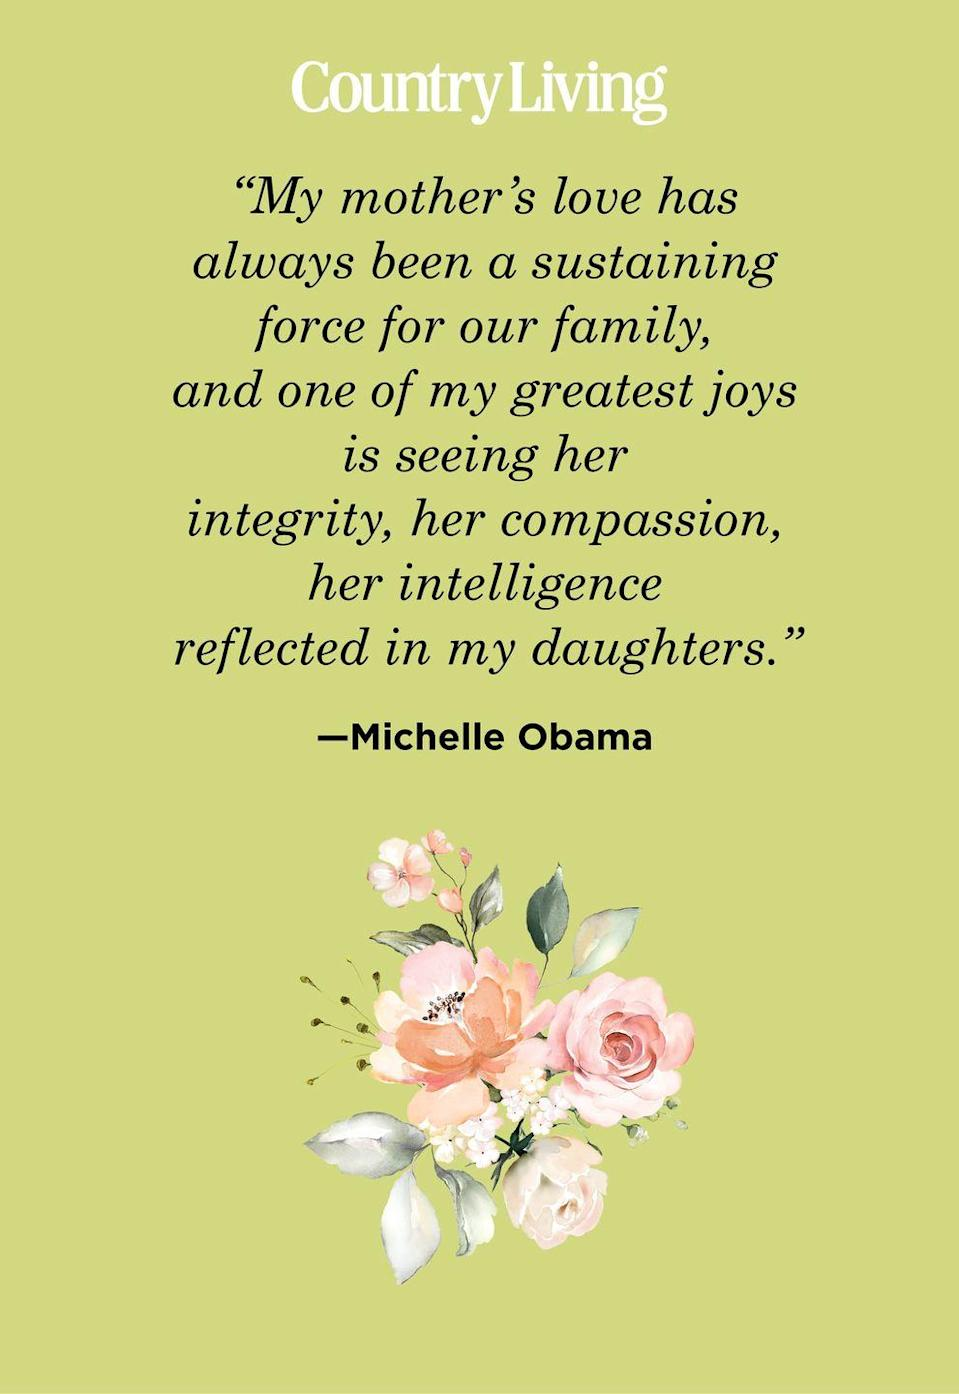 "<p>""My mother's love has always been a sustaining force for our family, and one of my greatest joys is seeing her integrity, her compassion, her intelligence reflected in my daughters.""</p>"